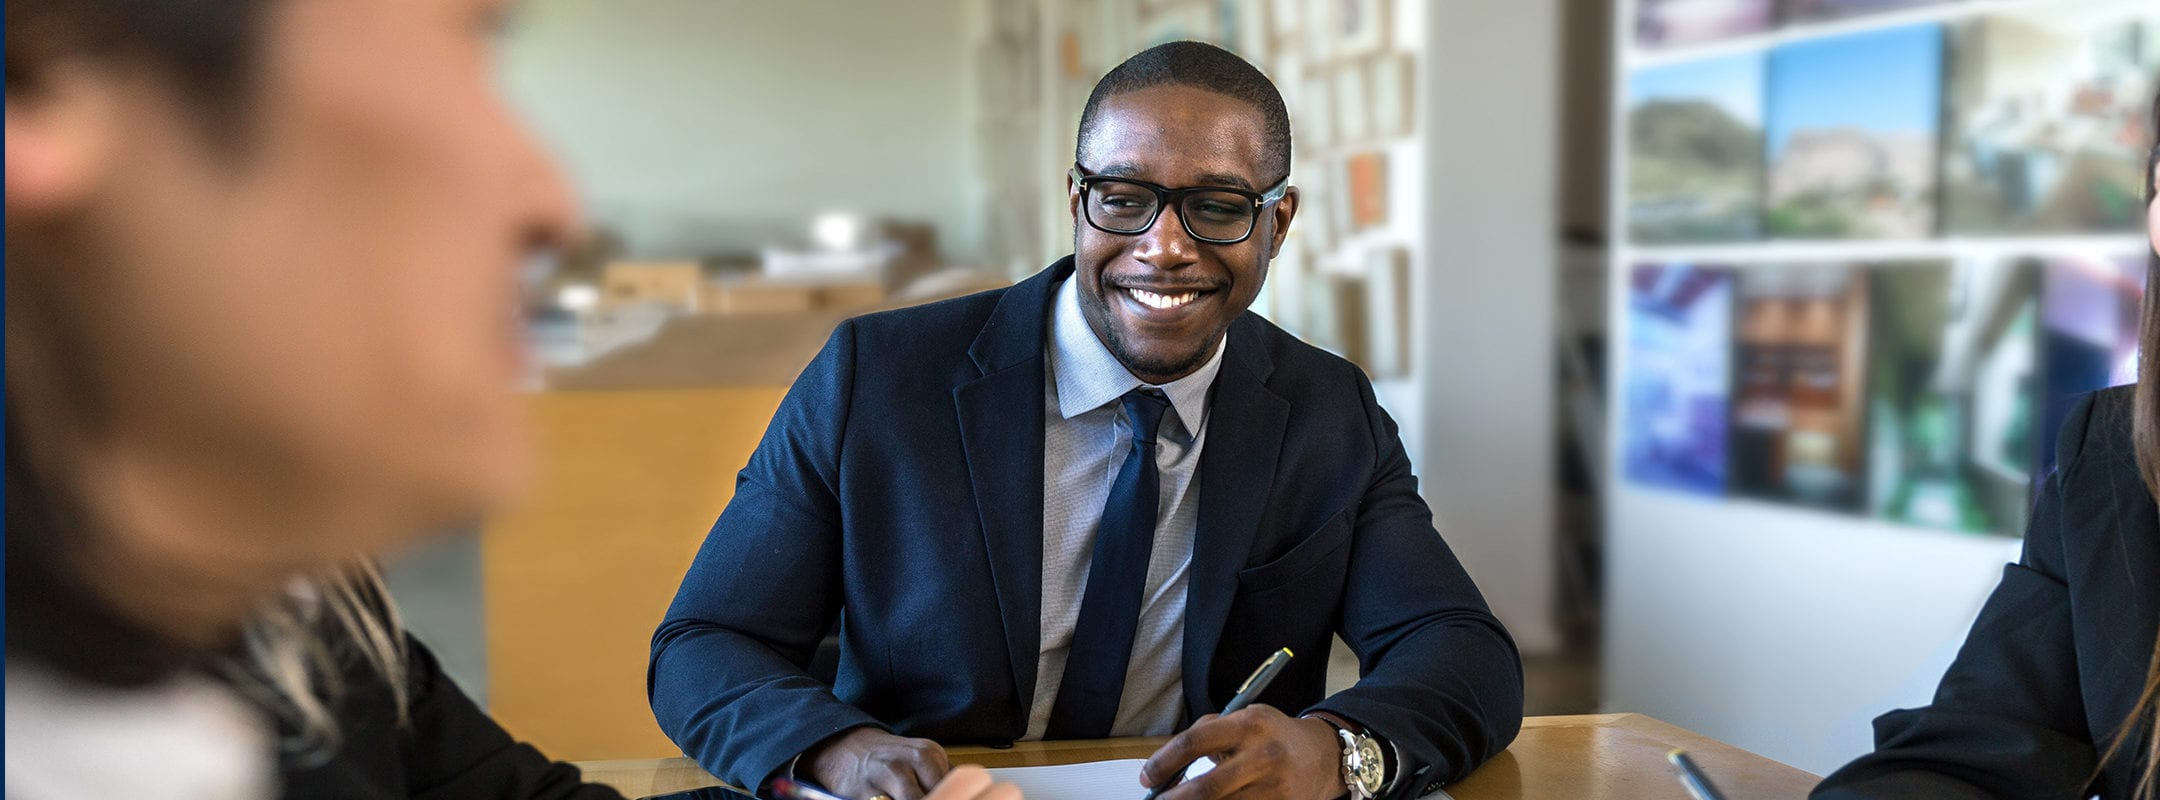 African american executive business man at group table meeting